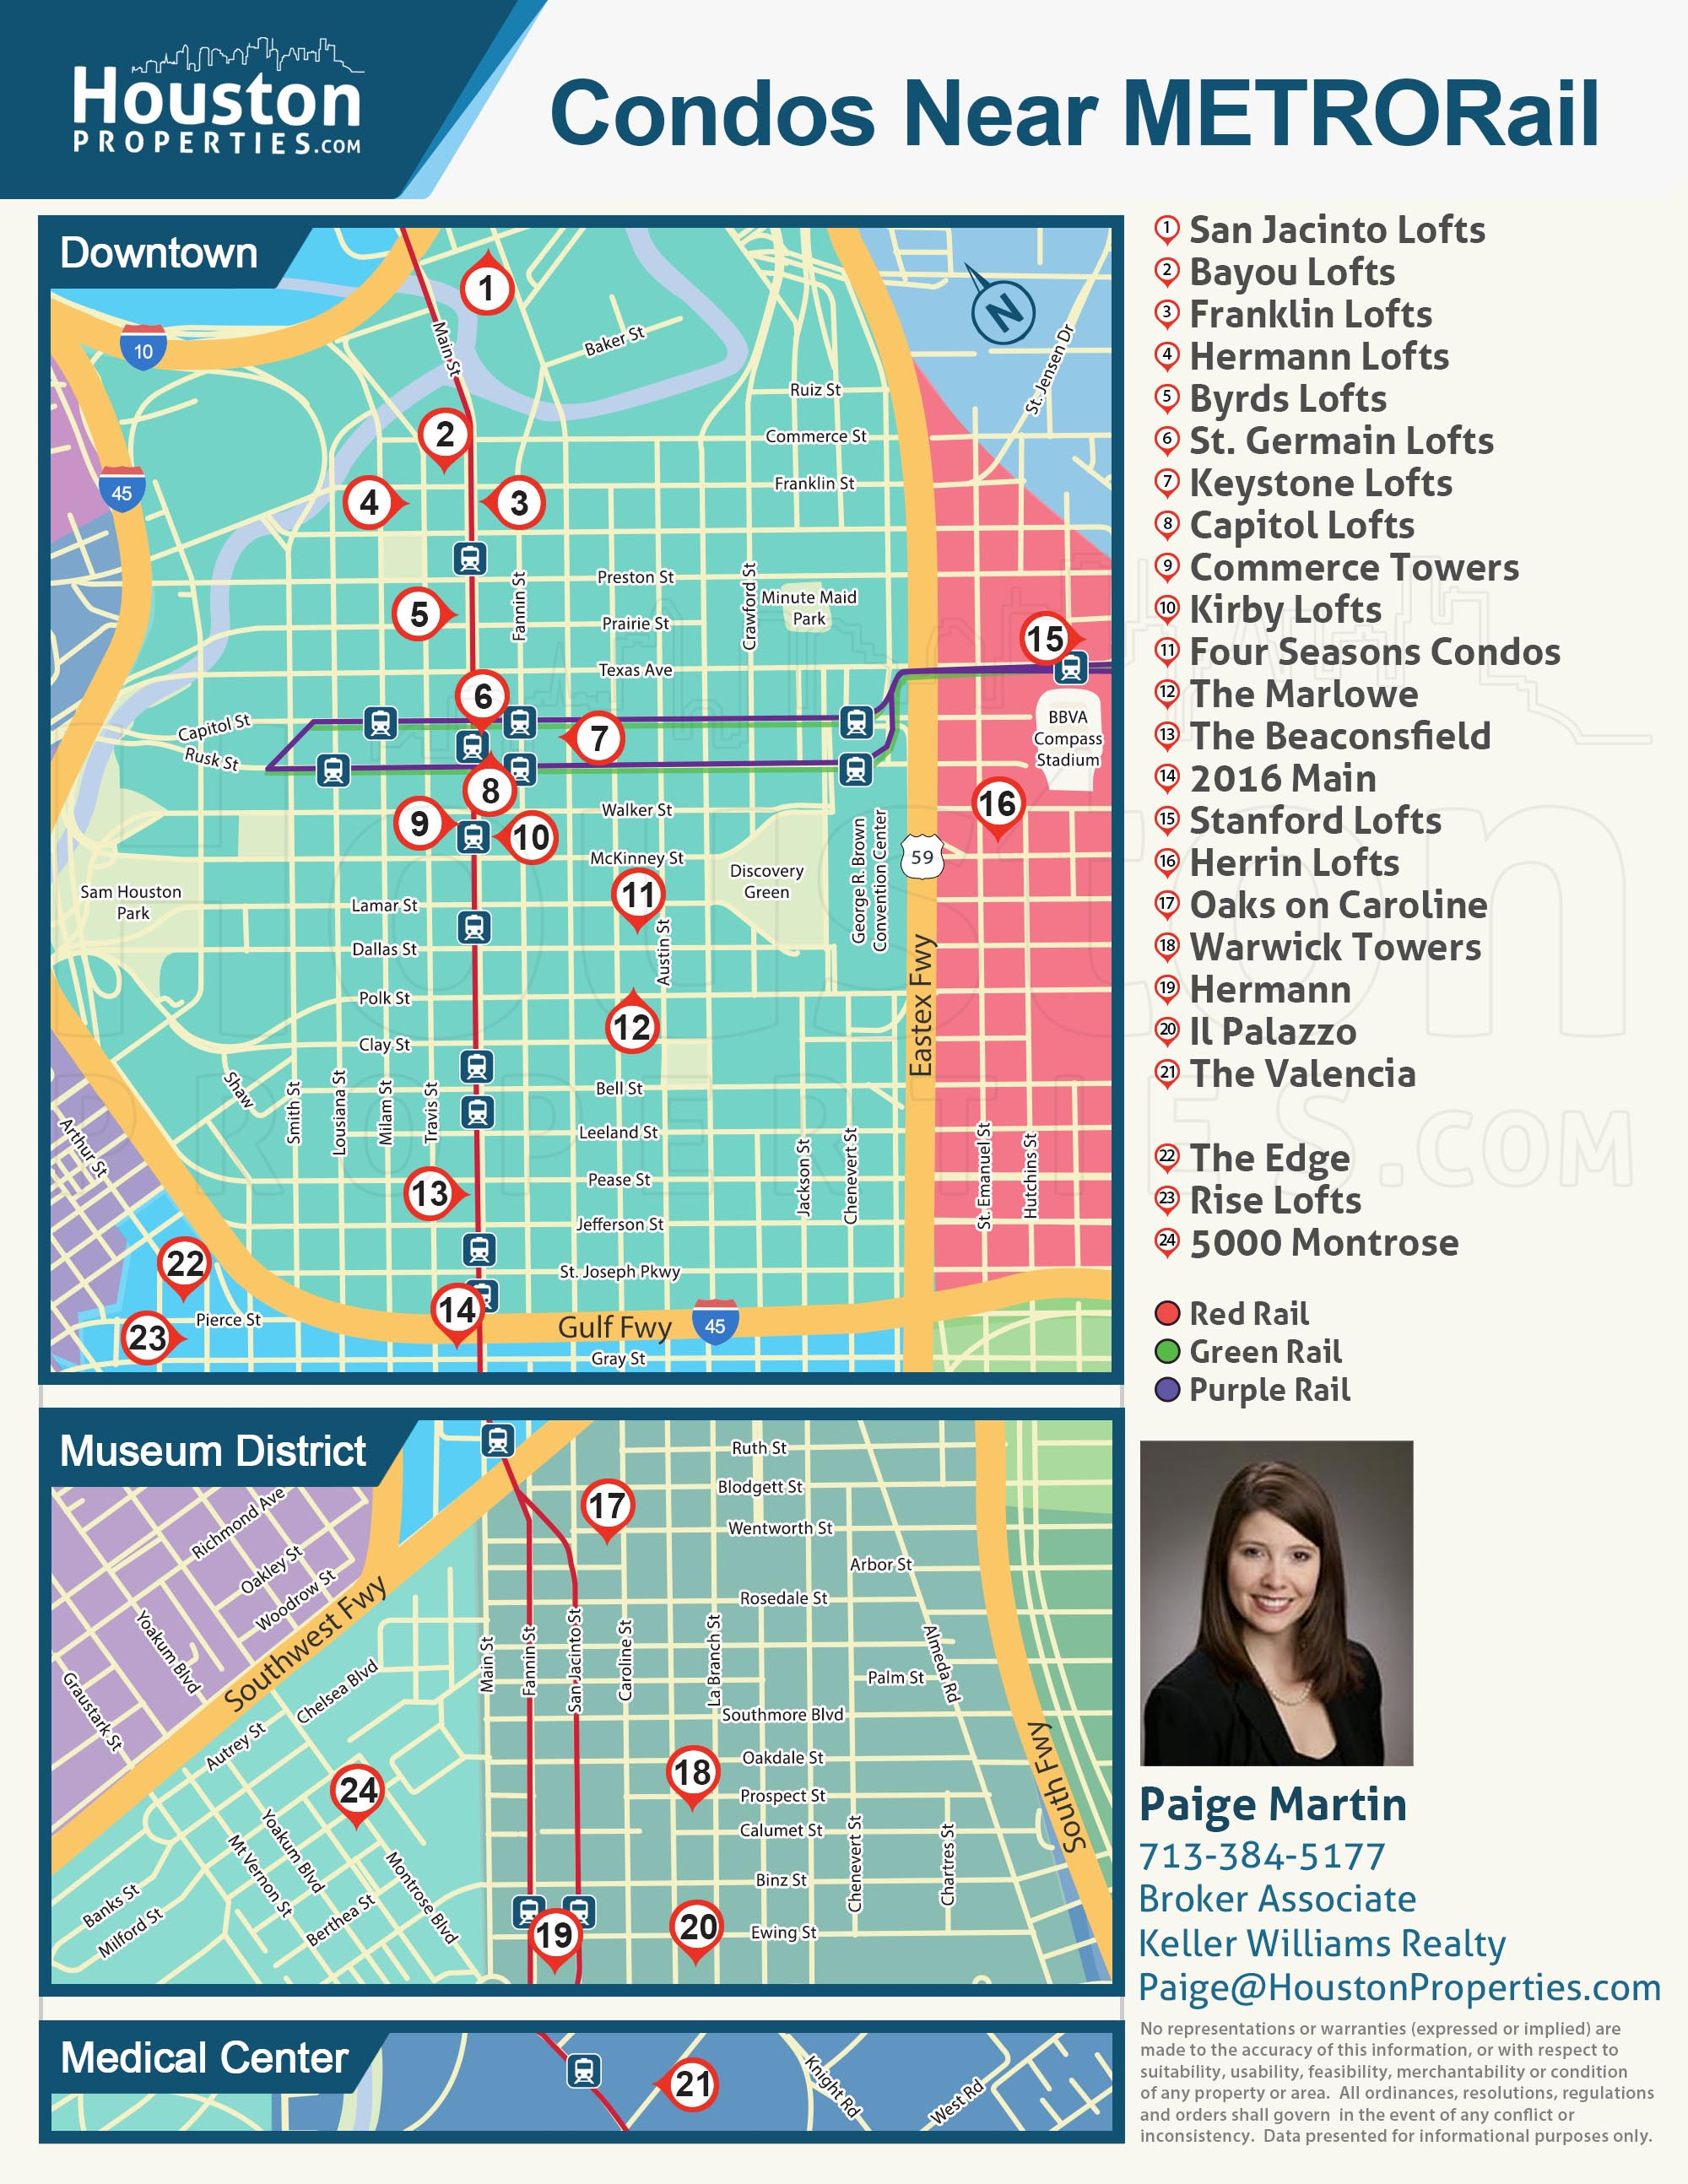 Map: Houston Condos Near The METRORail